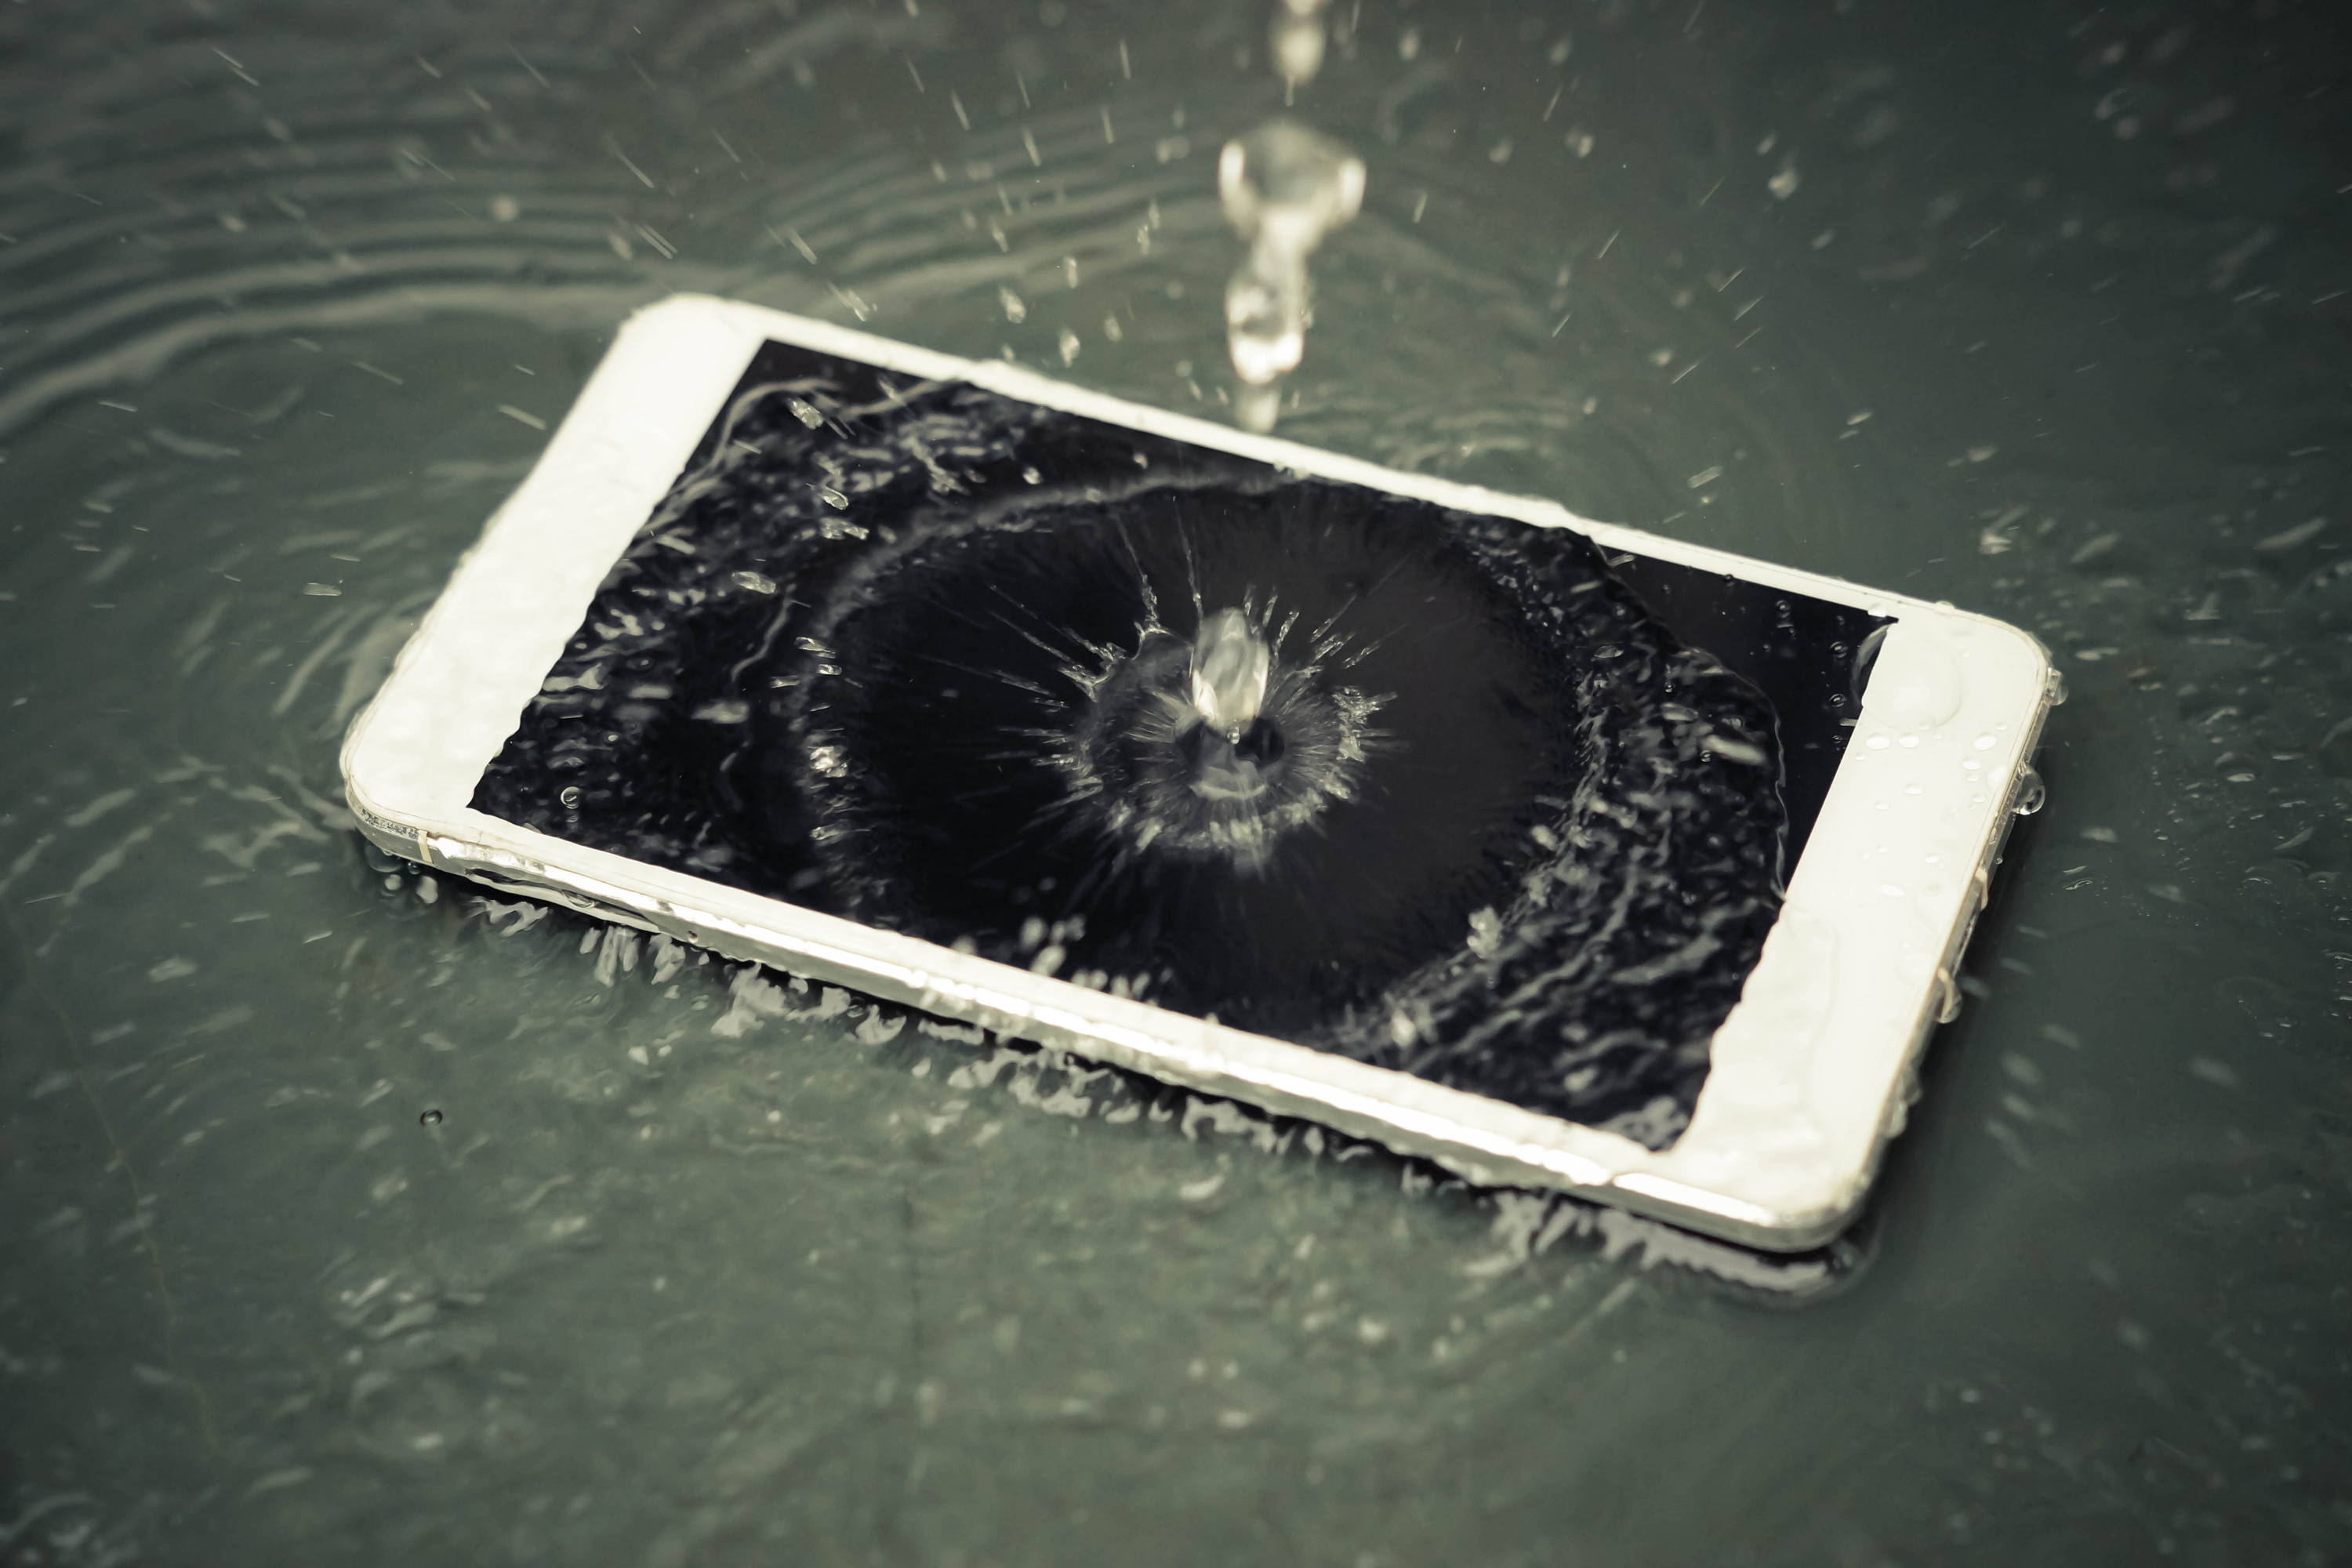 How To Fix Your Water Damaged Iphone Expert Guide Ismash A Short Circuit